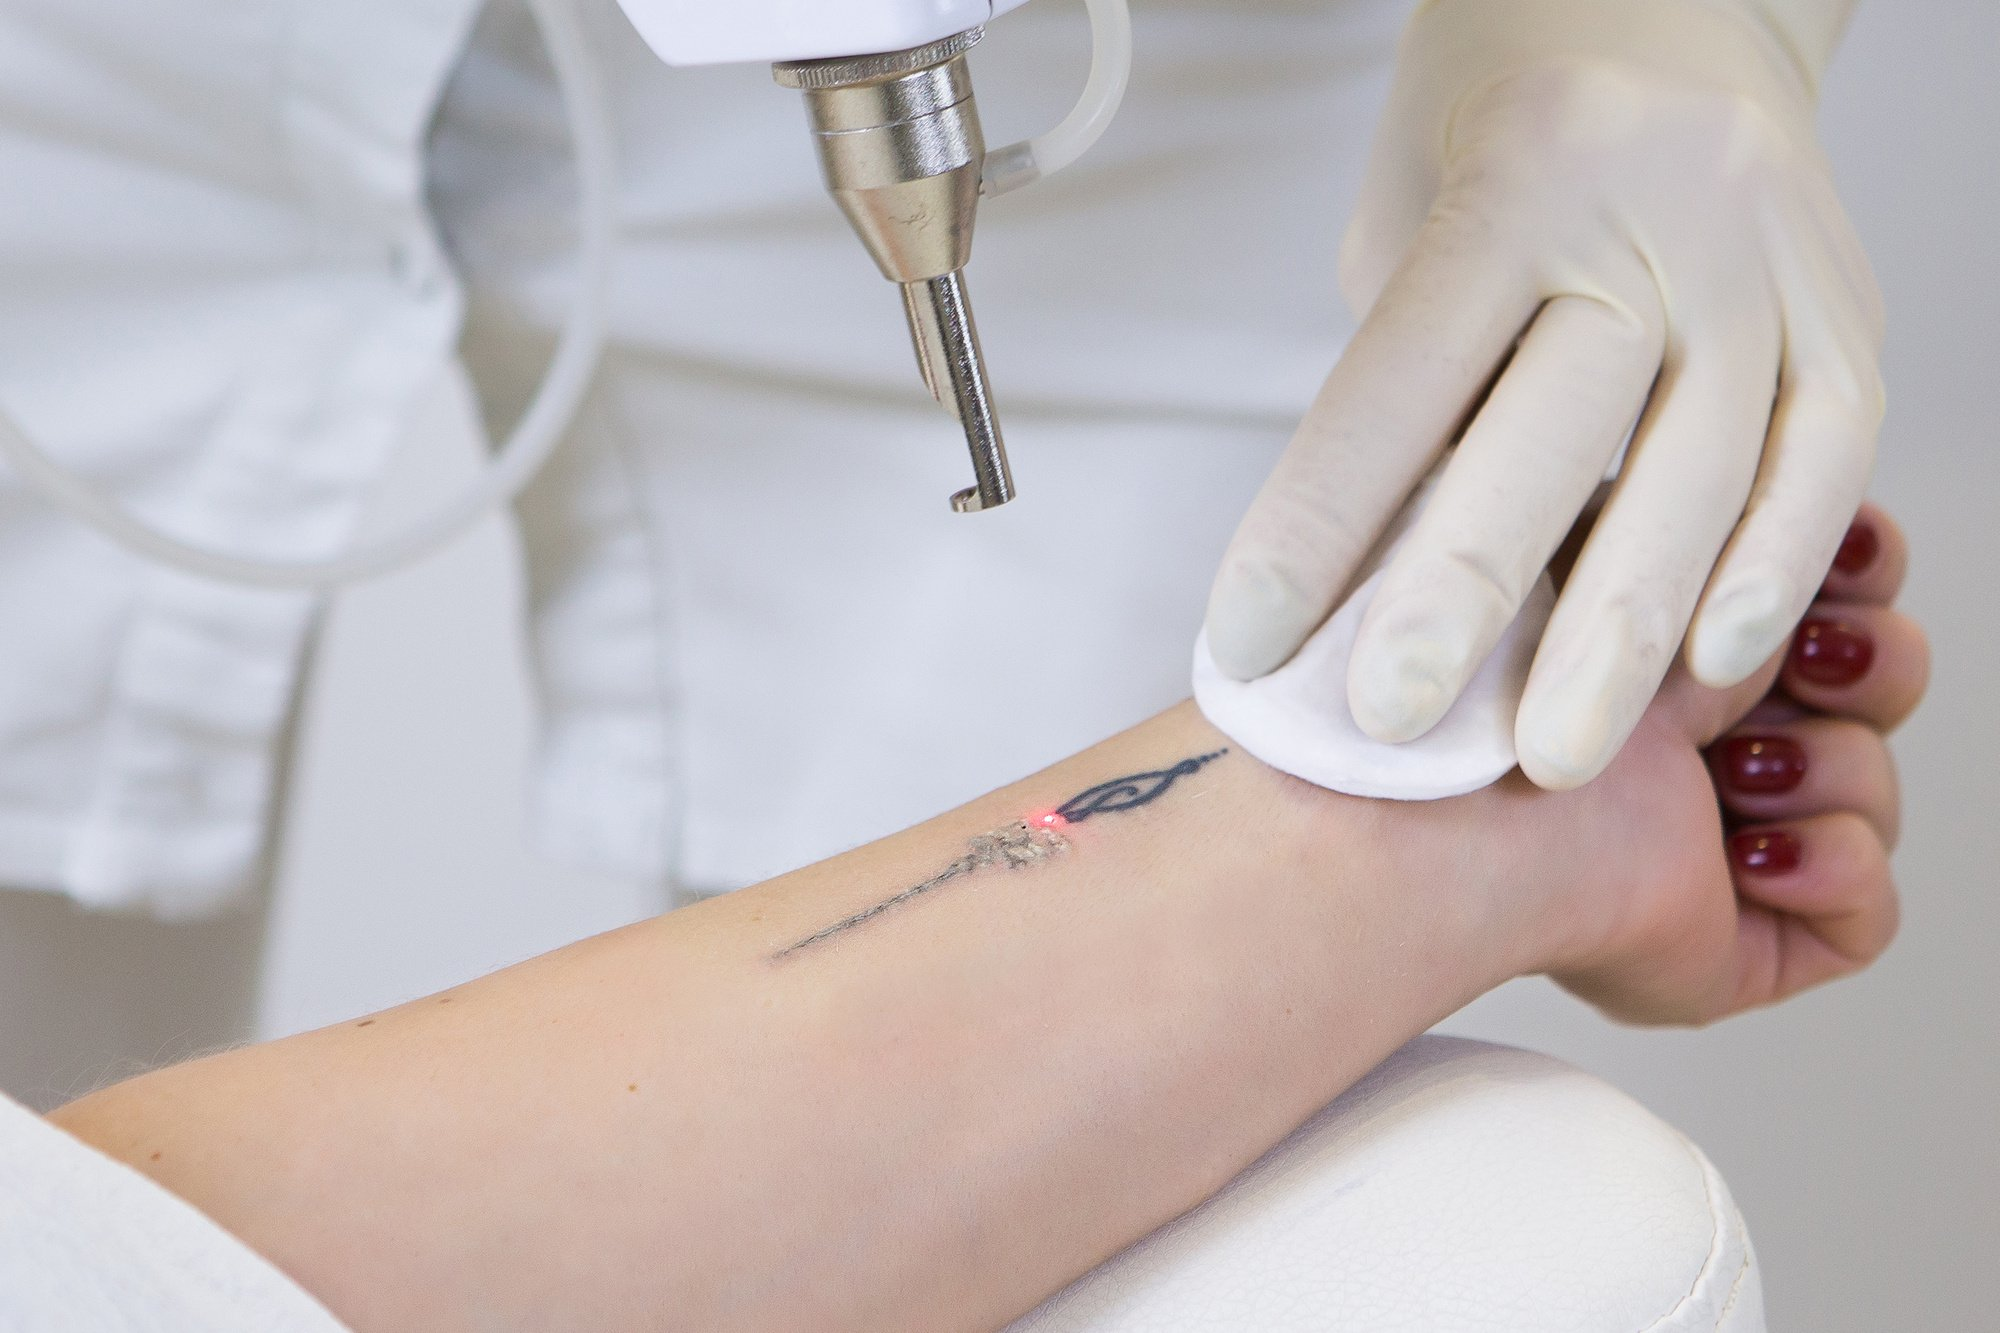 does the laserless tattoo removal guide work